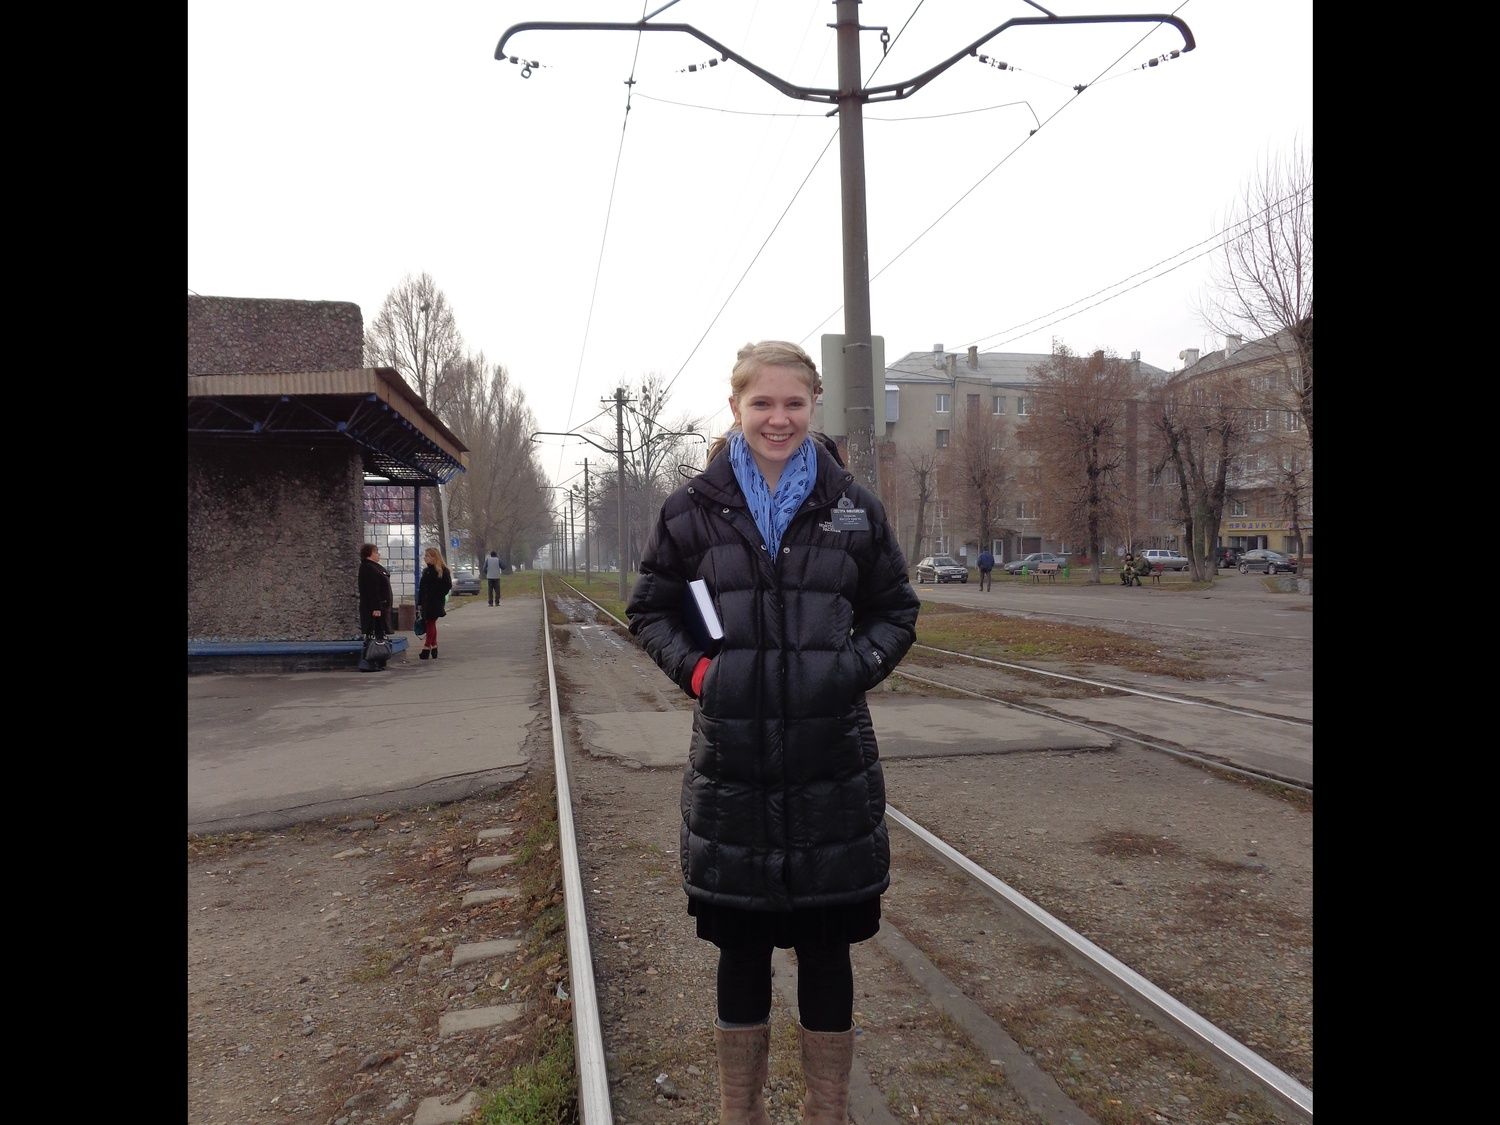 Finlayson in Ukraine, where she went after her freshman year to complete missionary work along the Ukraine-Russia border